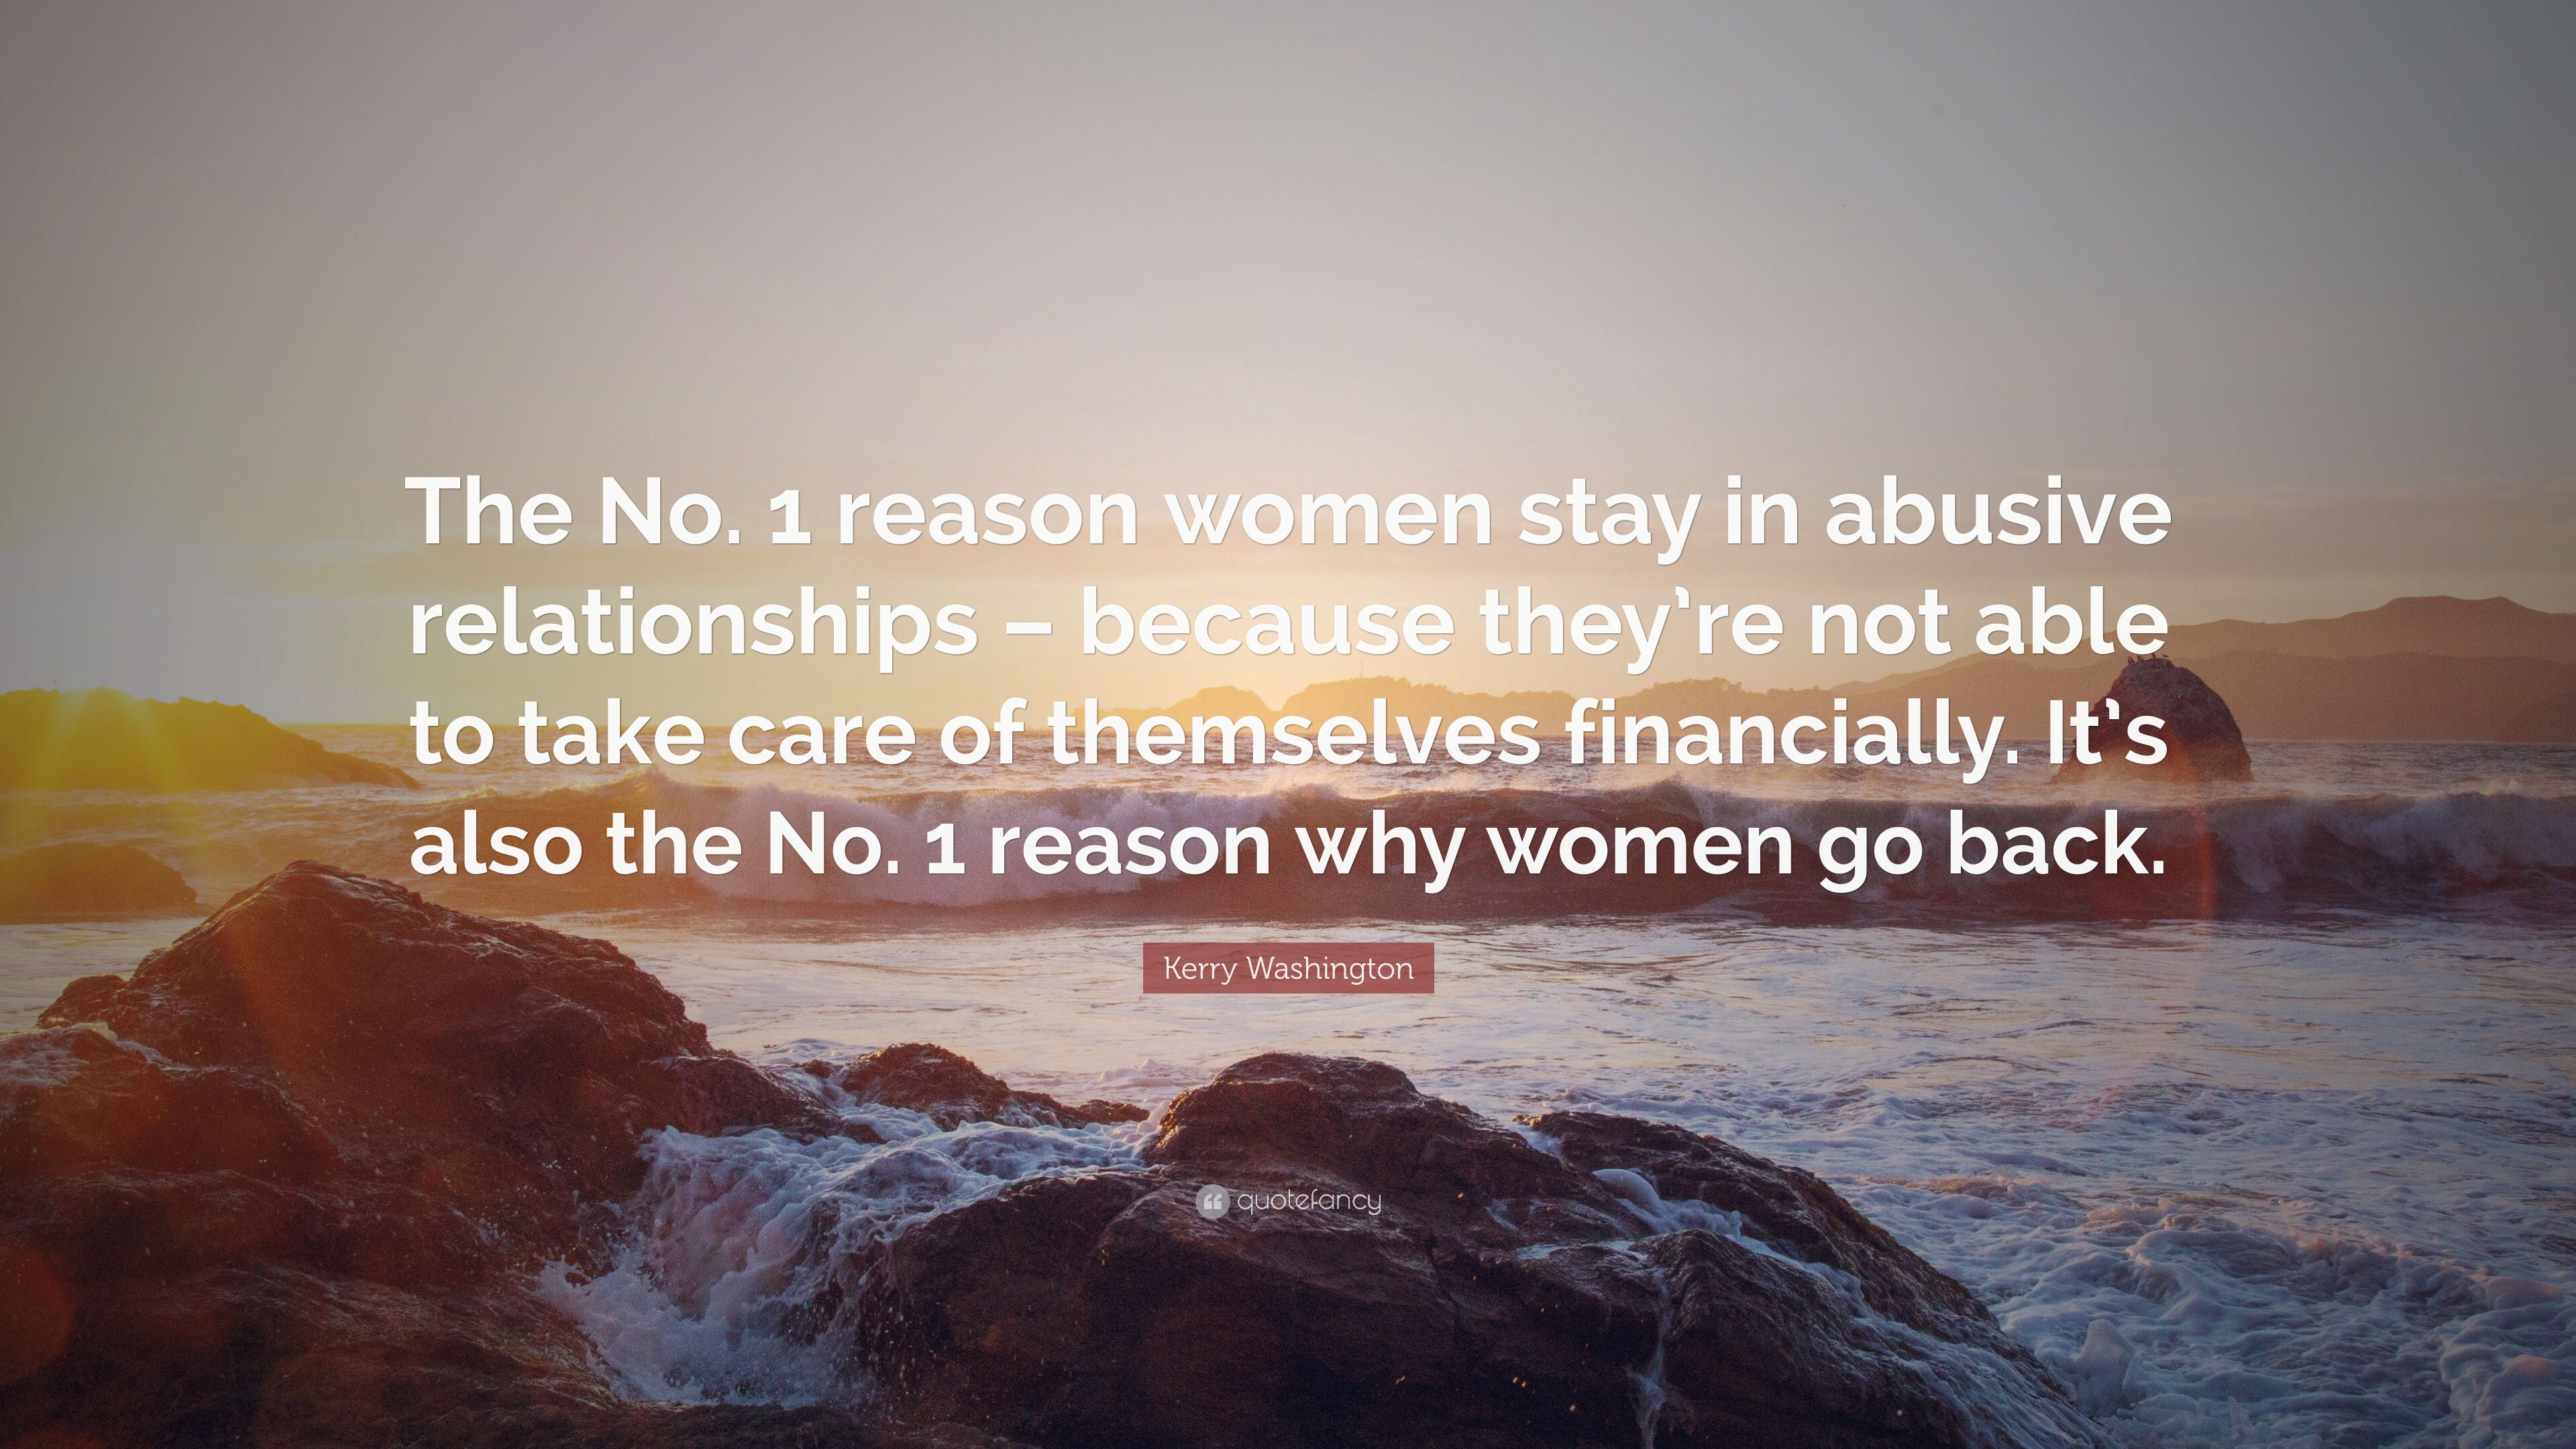 Why do women return to abusive relationships